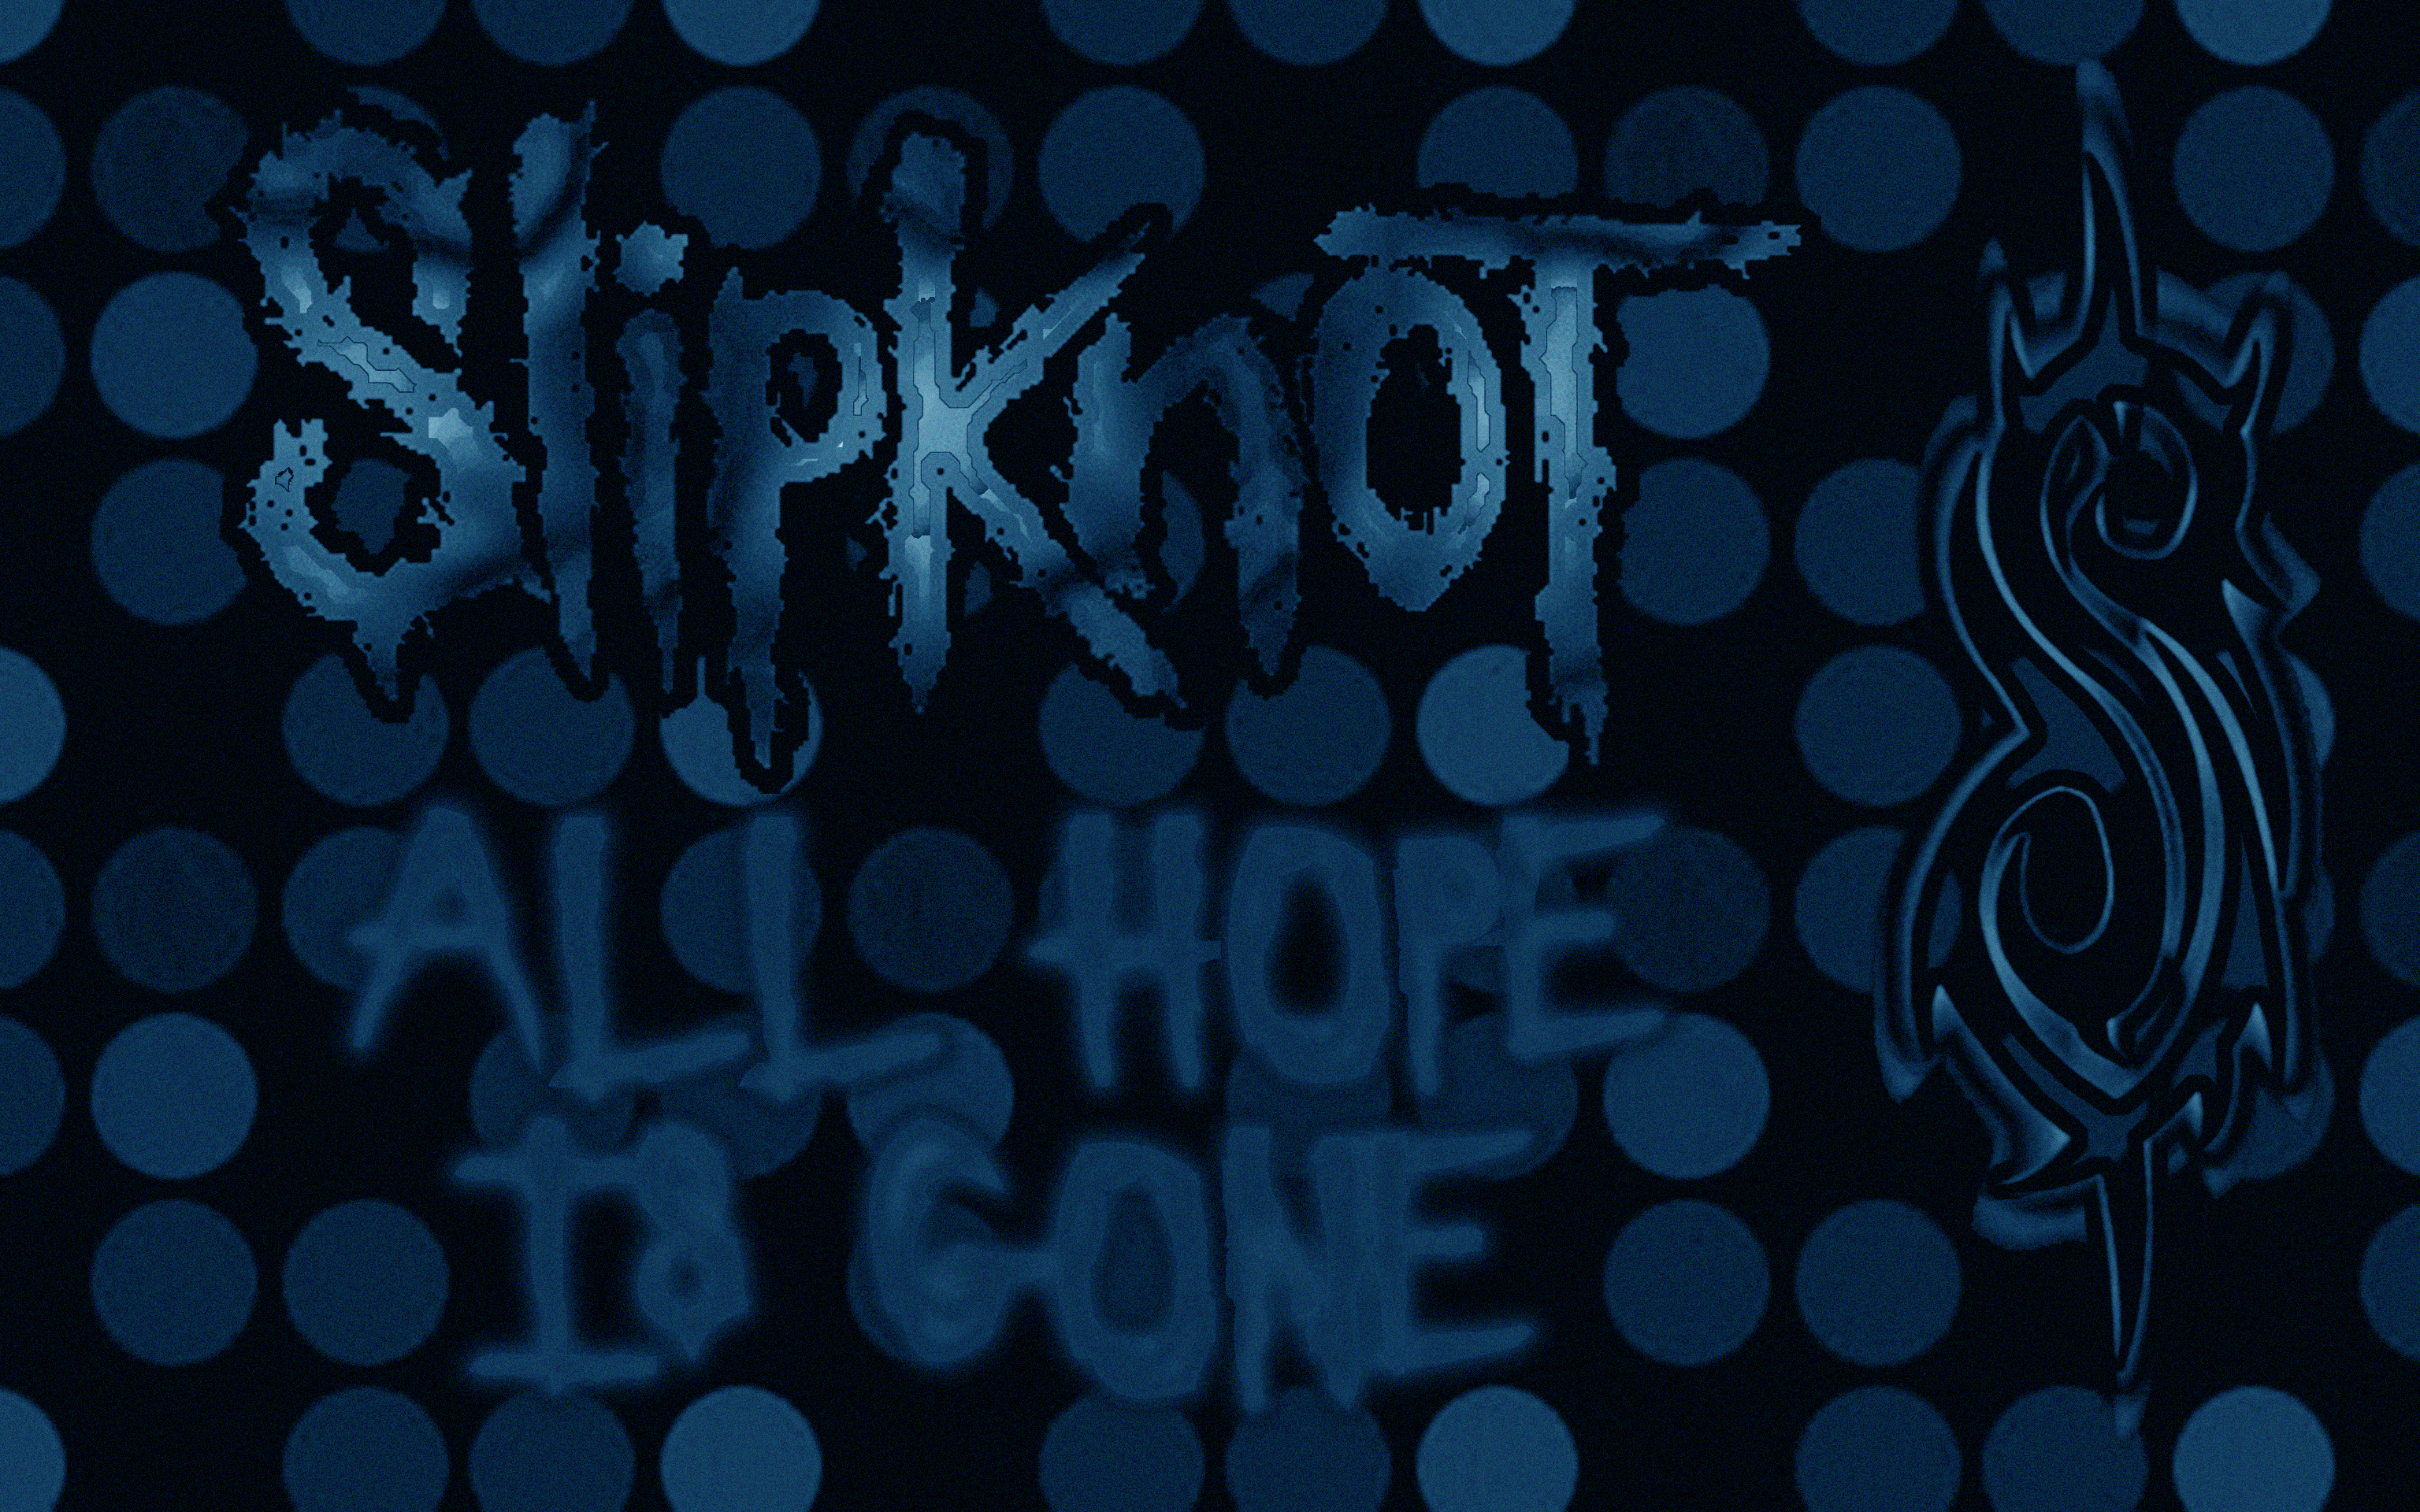 Slipknot logo on slipknot fans deviantart ngrubor 4 0 all hope is gone by timofticiuc2 biocorpaavc Choice Image